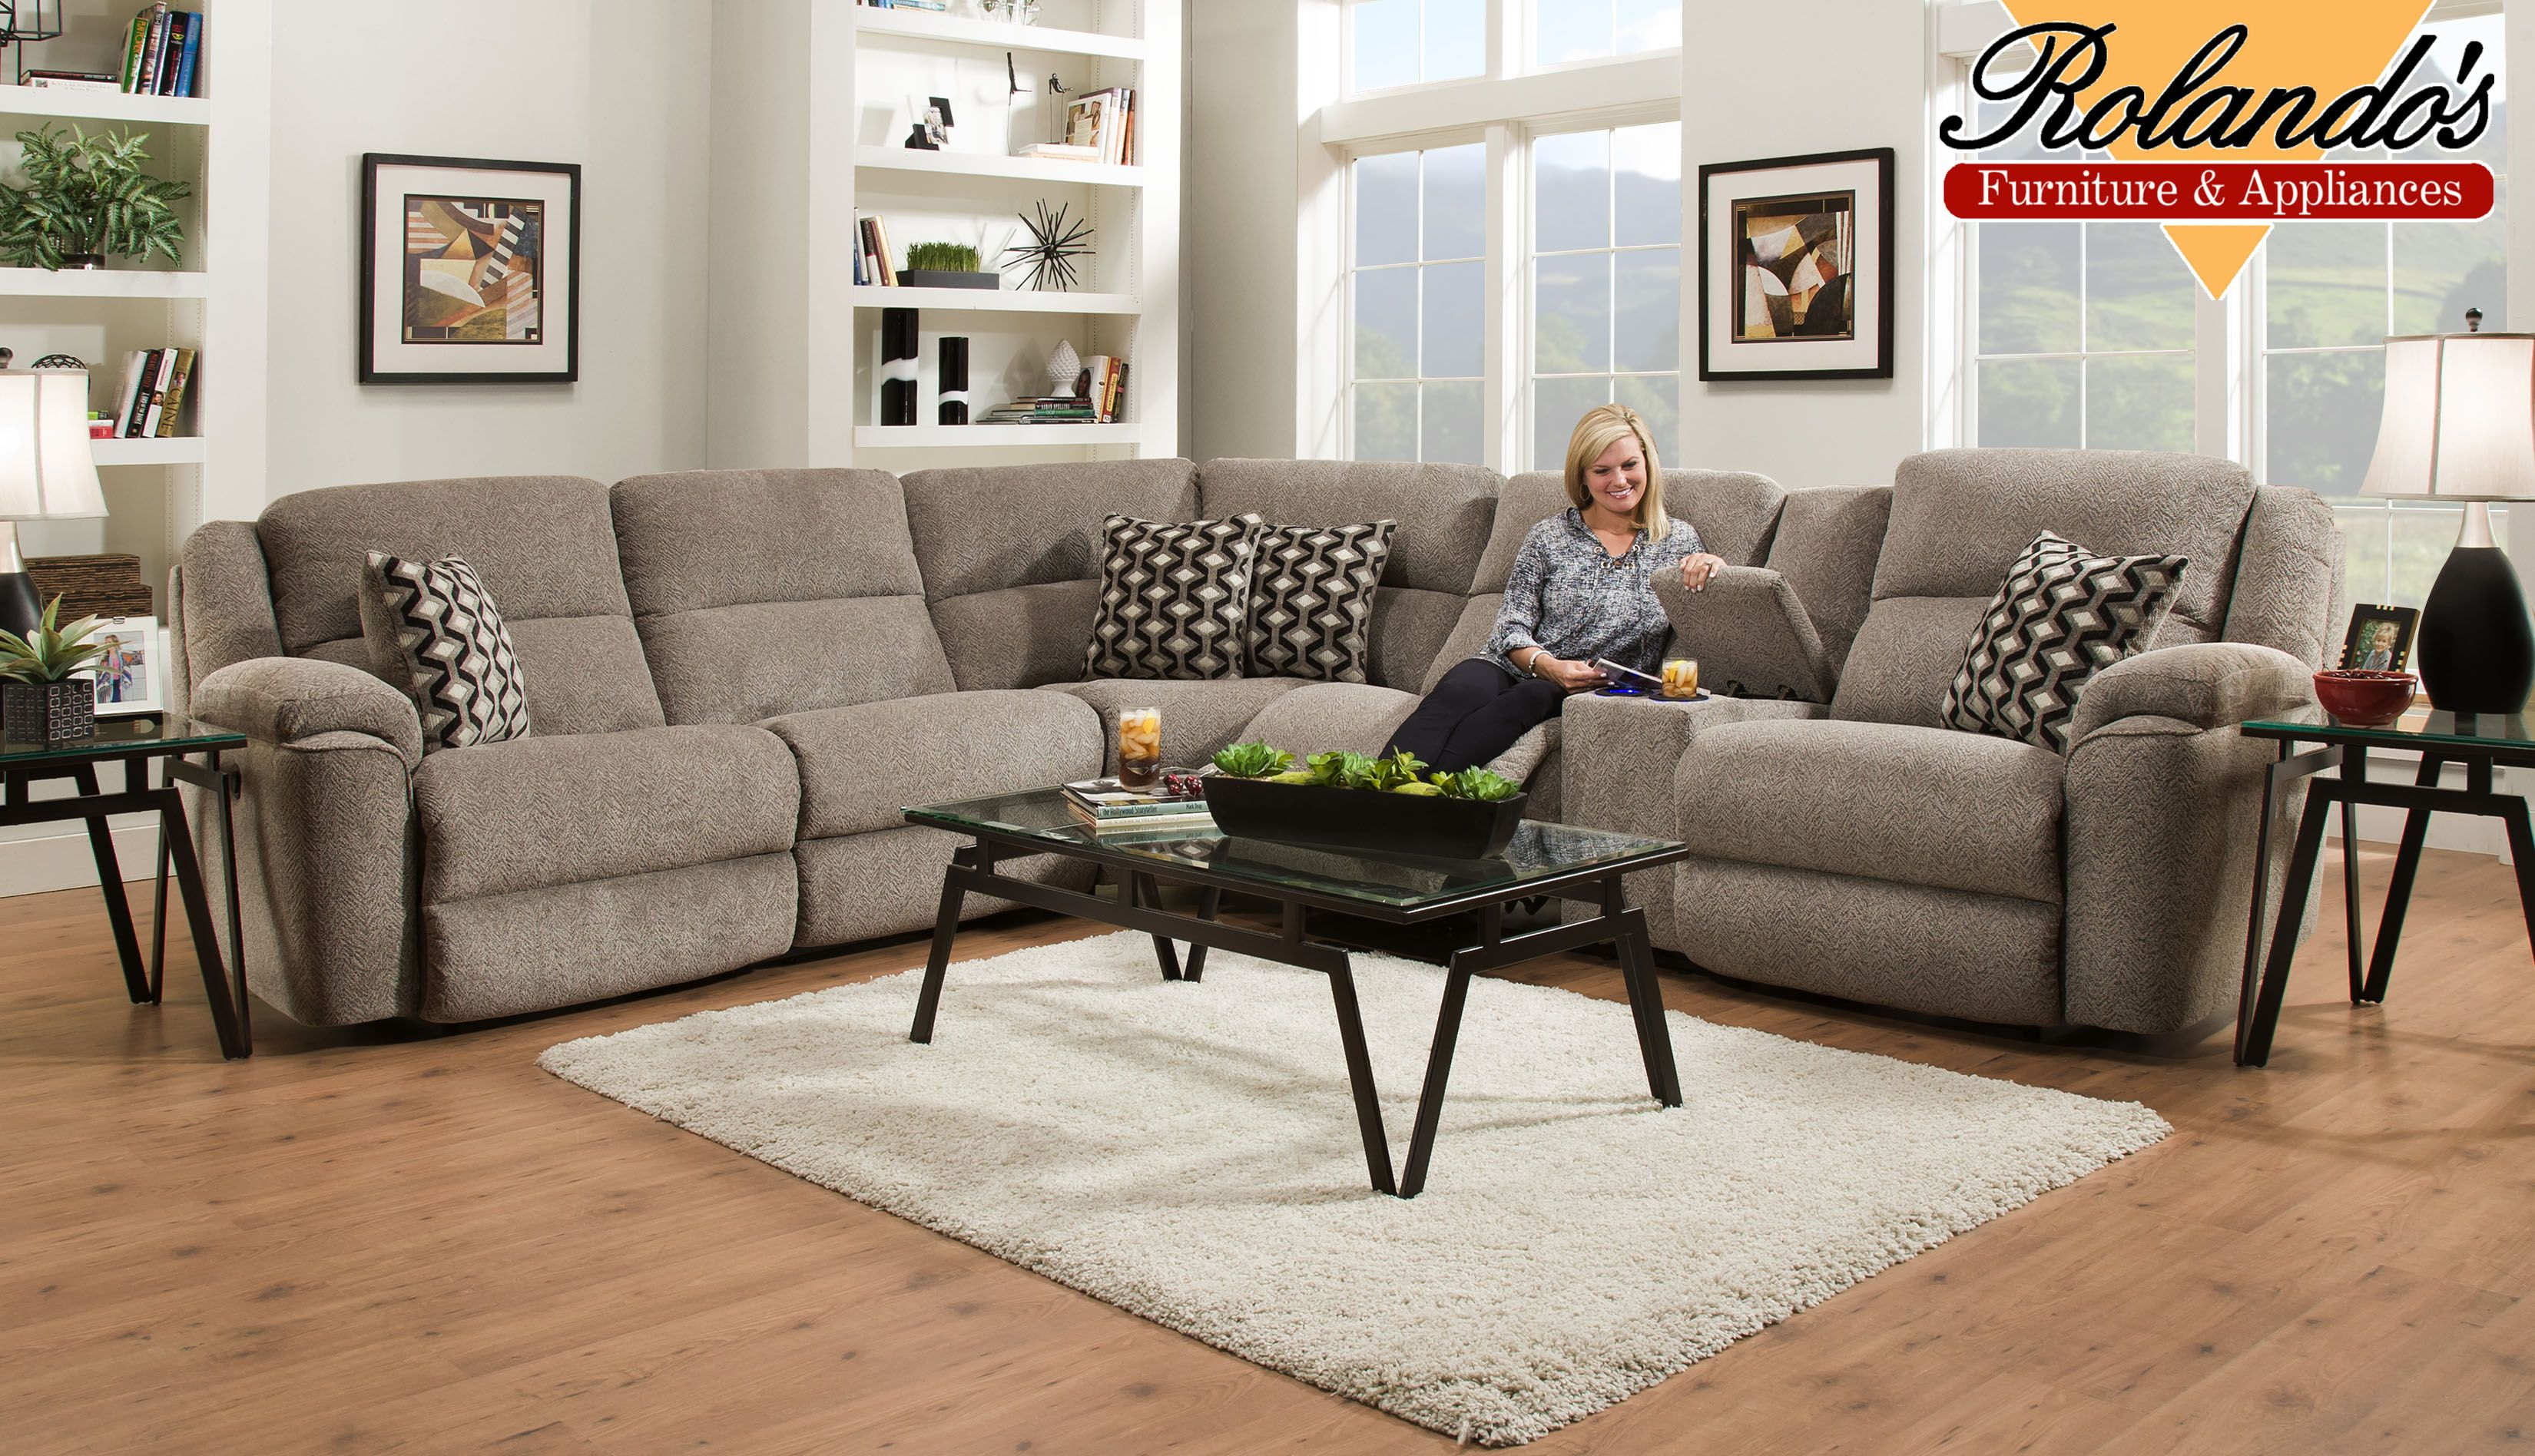 Sit Back And Relax In This Large Wedge Sectional Power Reclining Allows You To Put Yourself In The Exact Posi Furniture Reclining Furniture Sit Back And Relax